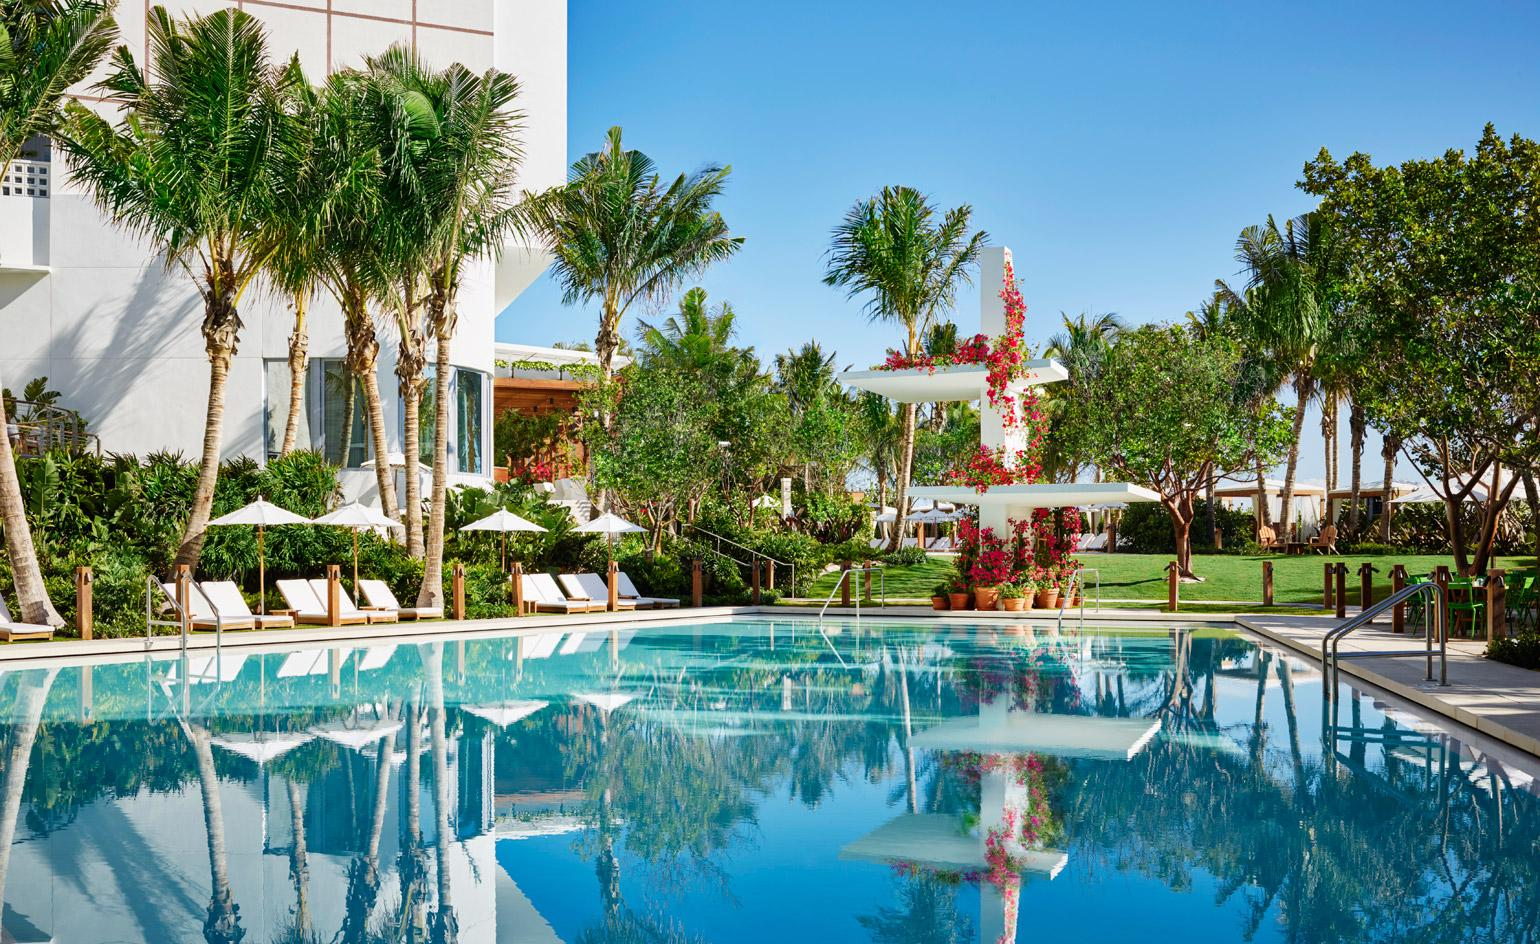 Miami Hotels Voucher Code Printable 80